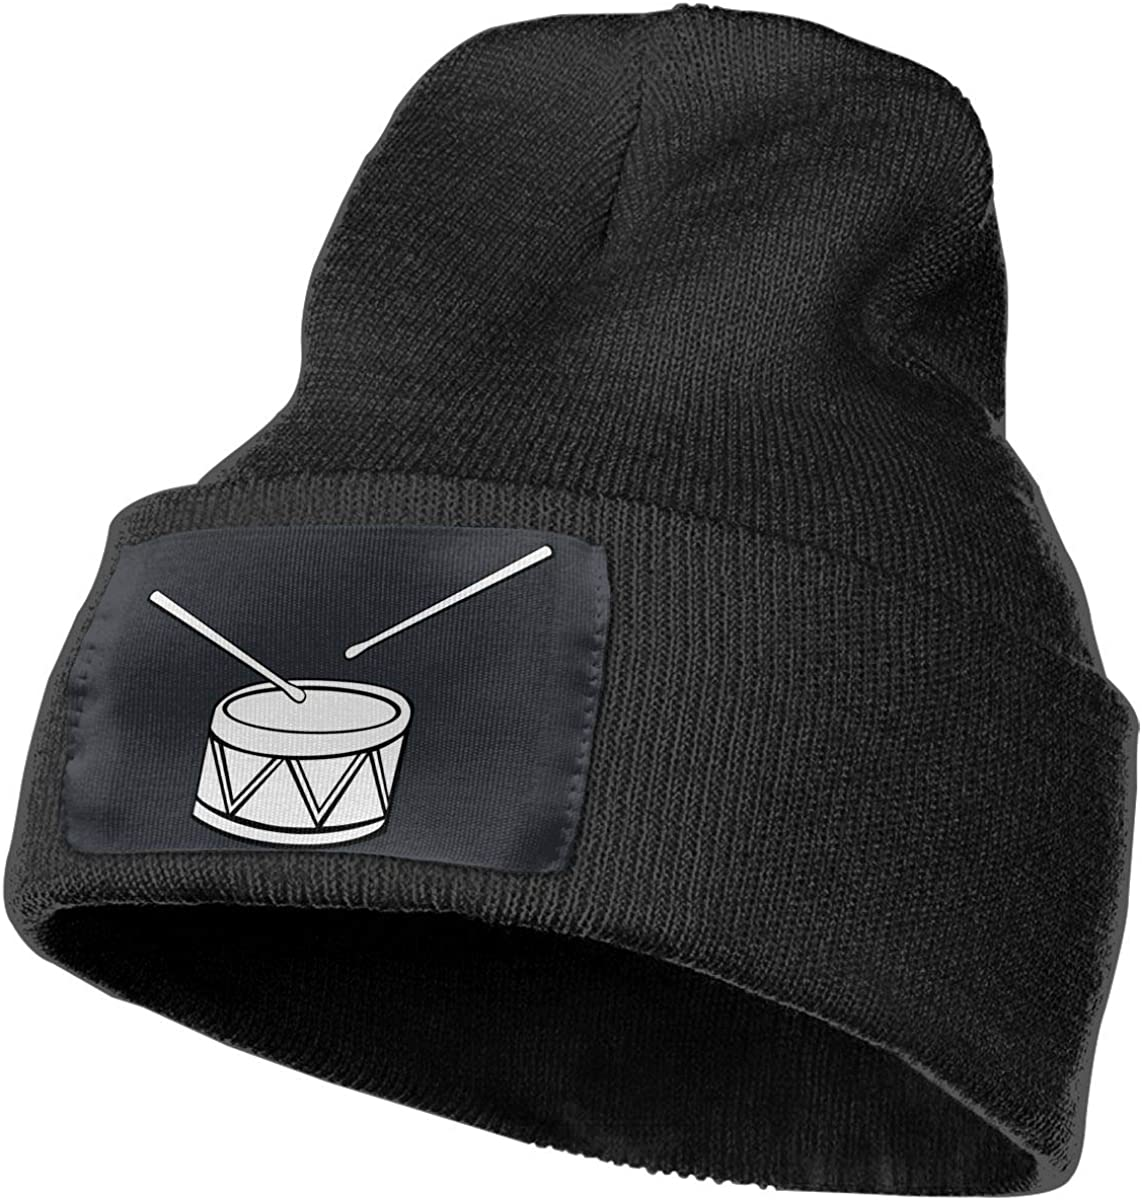 WHOO93@Y Mens Womens 100/% Acrylic Knit Hat Cap Snare Drum Clipart Thick Beanie Hat